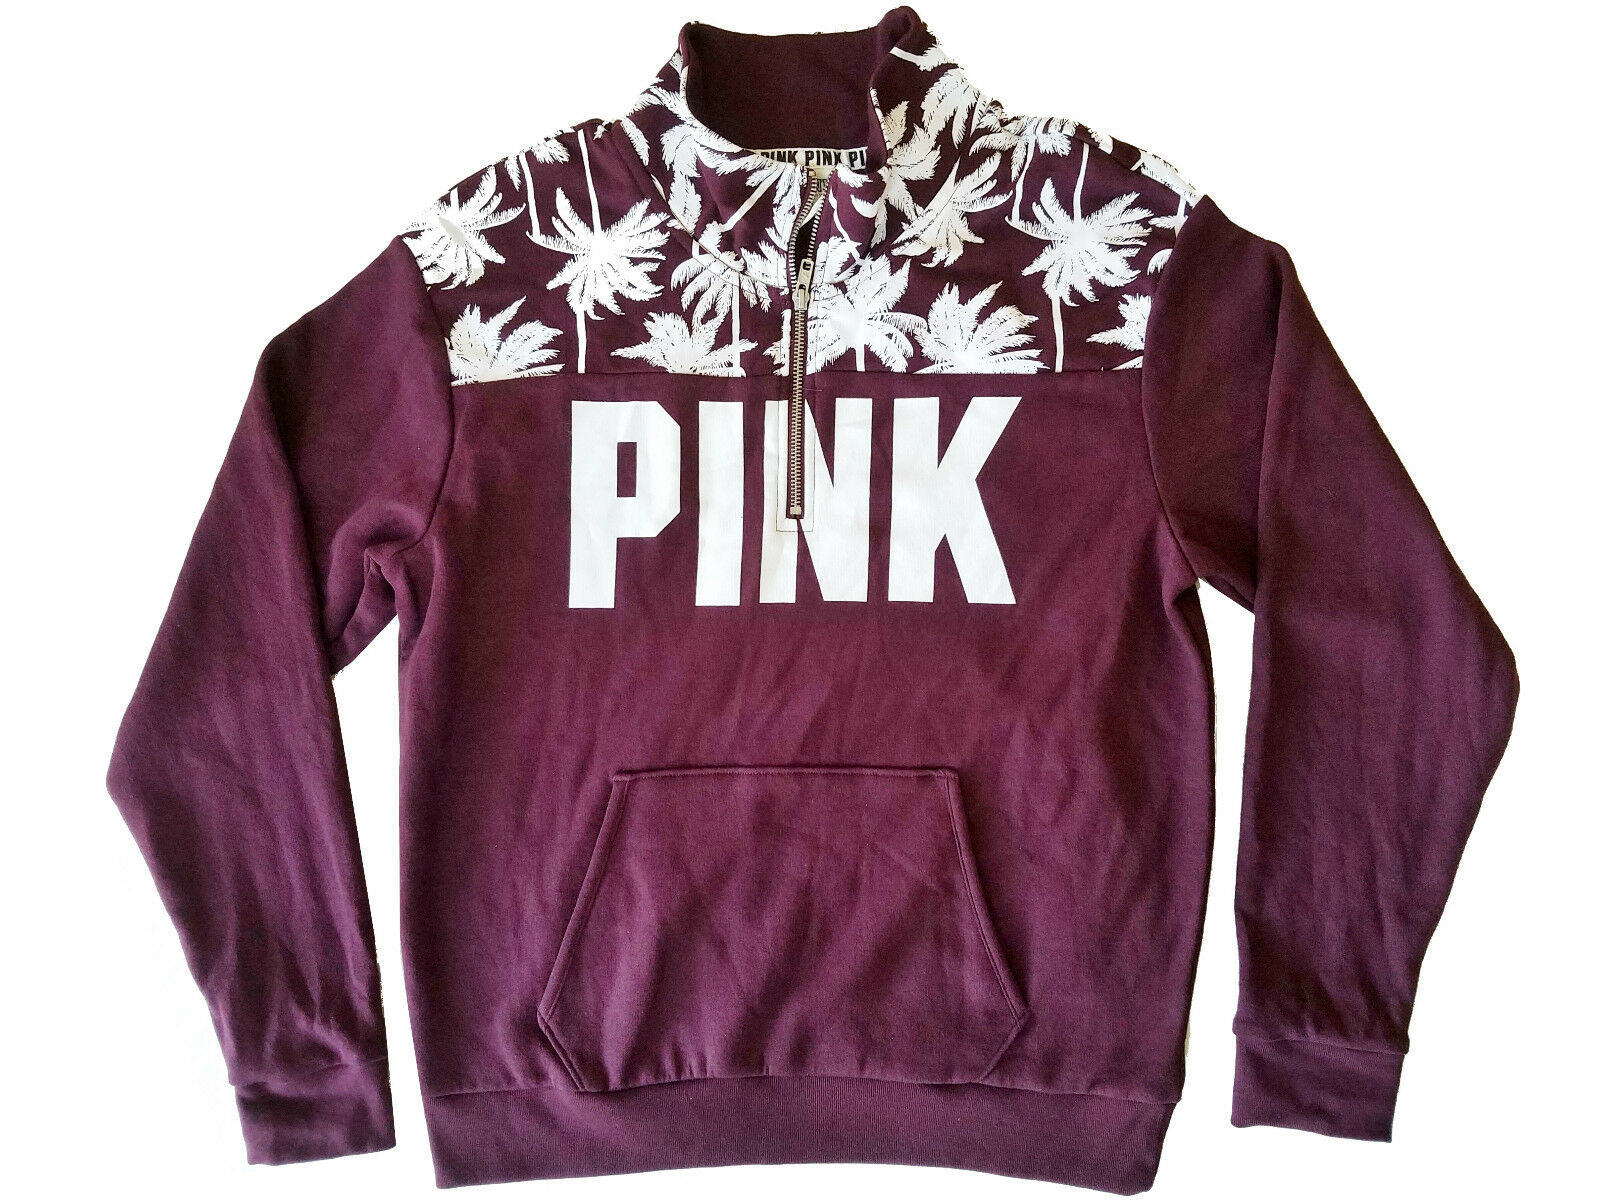 Victoria's Secret PINK Boyfriend Half Zip Palm Print Sweatshirt Burgundy